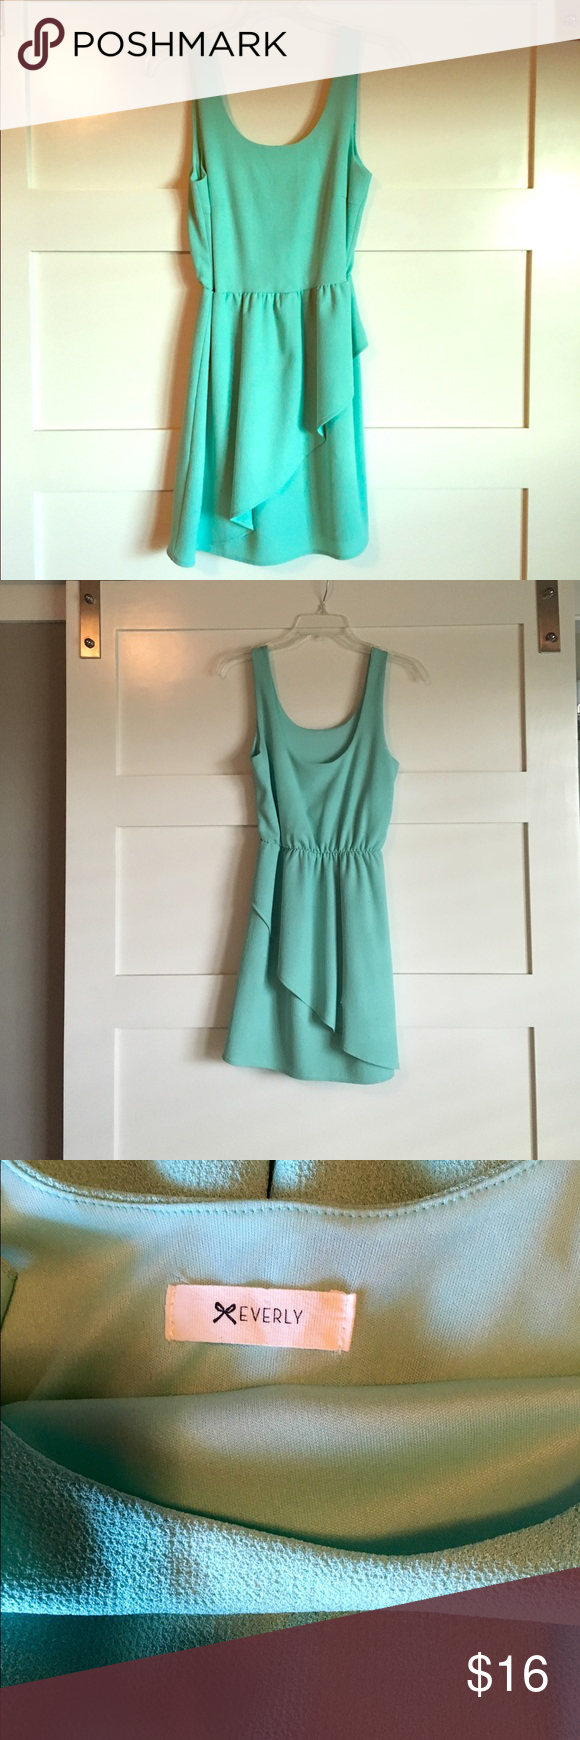 Peplum dress Very flattering peplum dress! It's in great condition except there are a few snags (last picture). 100% polyester. Mint green/bluish color. Everly Dresses Mini